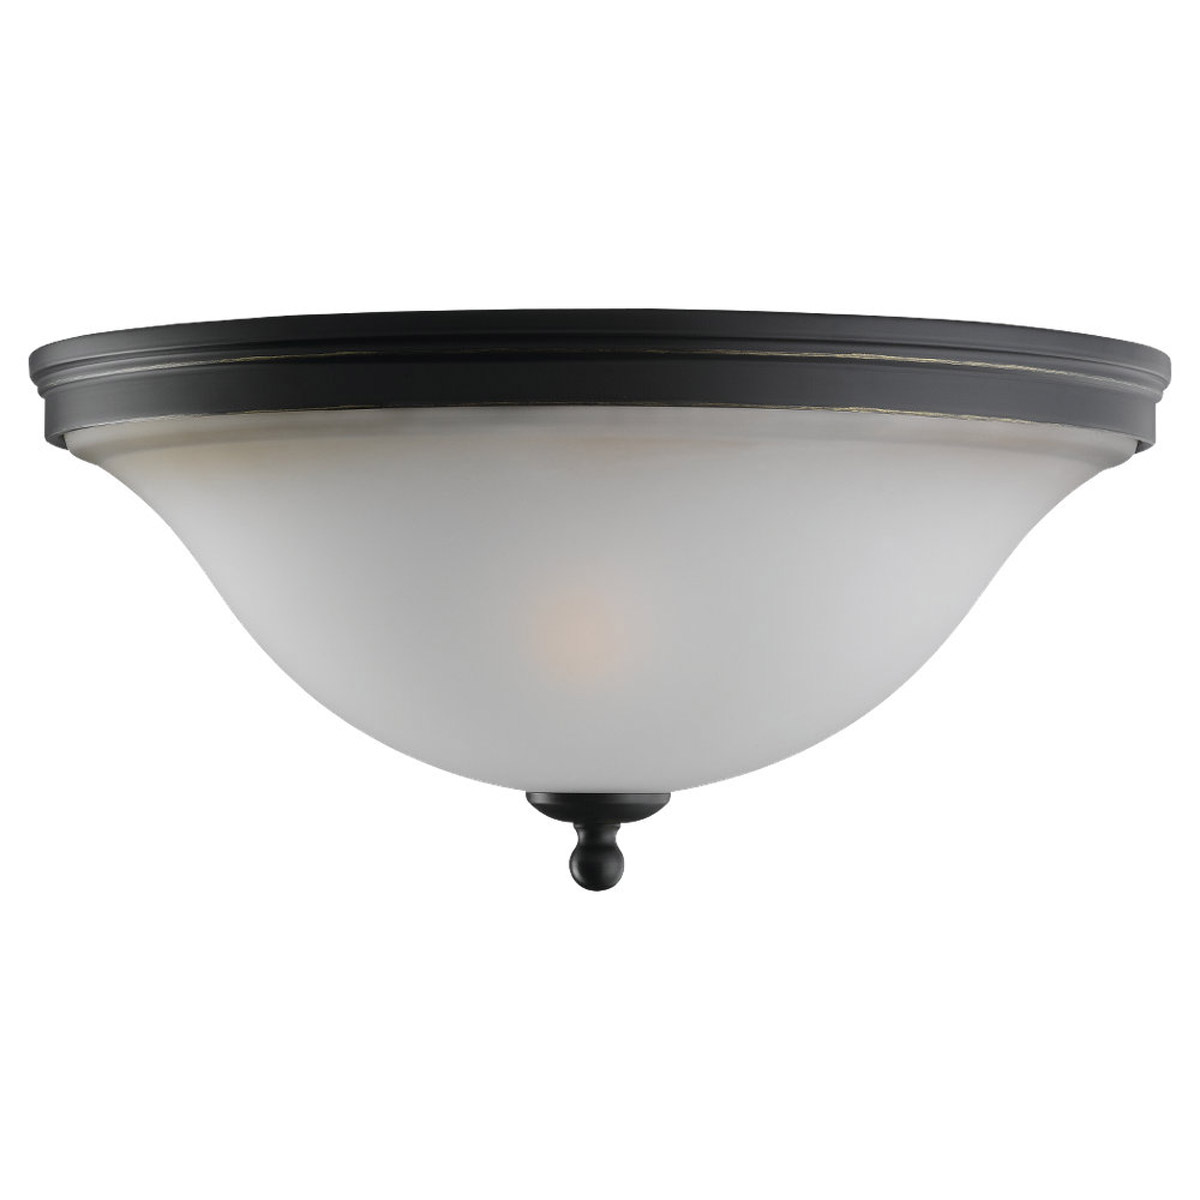 Sea Gull 75850-782 Gladstone 2 Light 14 inch Heirloom Bronze Flush Mount Ceiling Light in Smokey Amber Glass photo